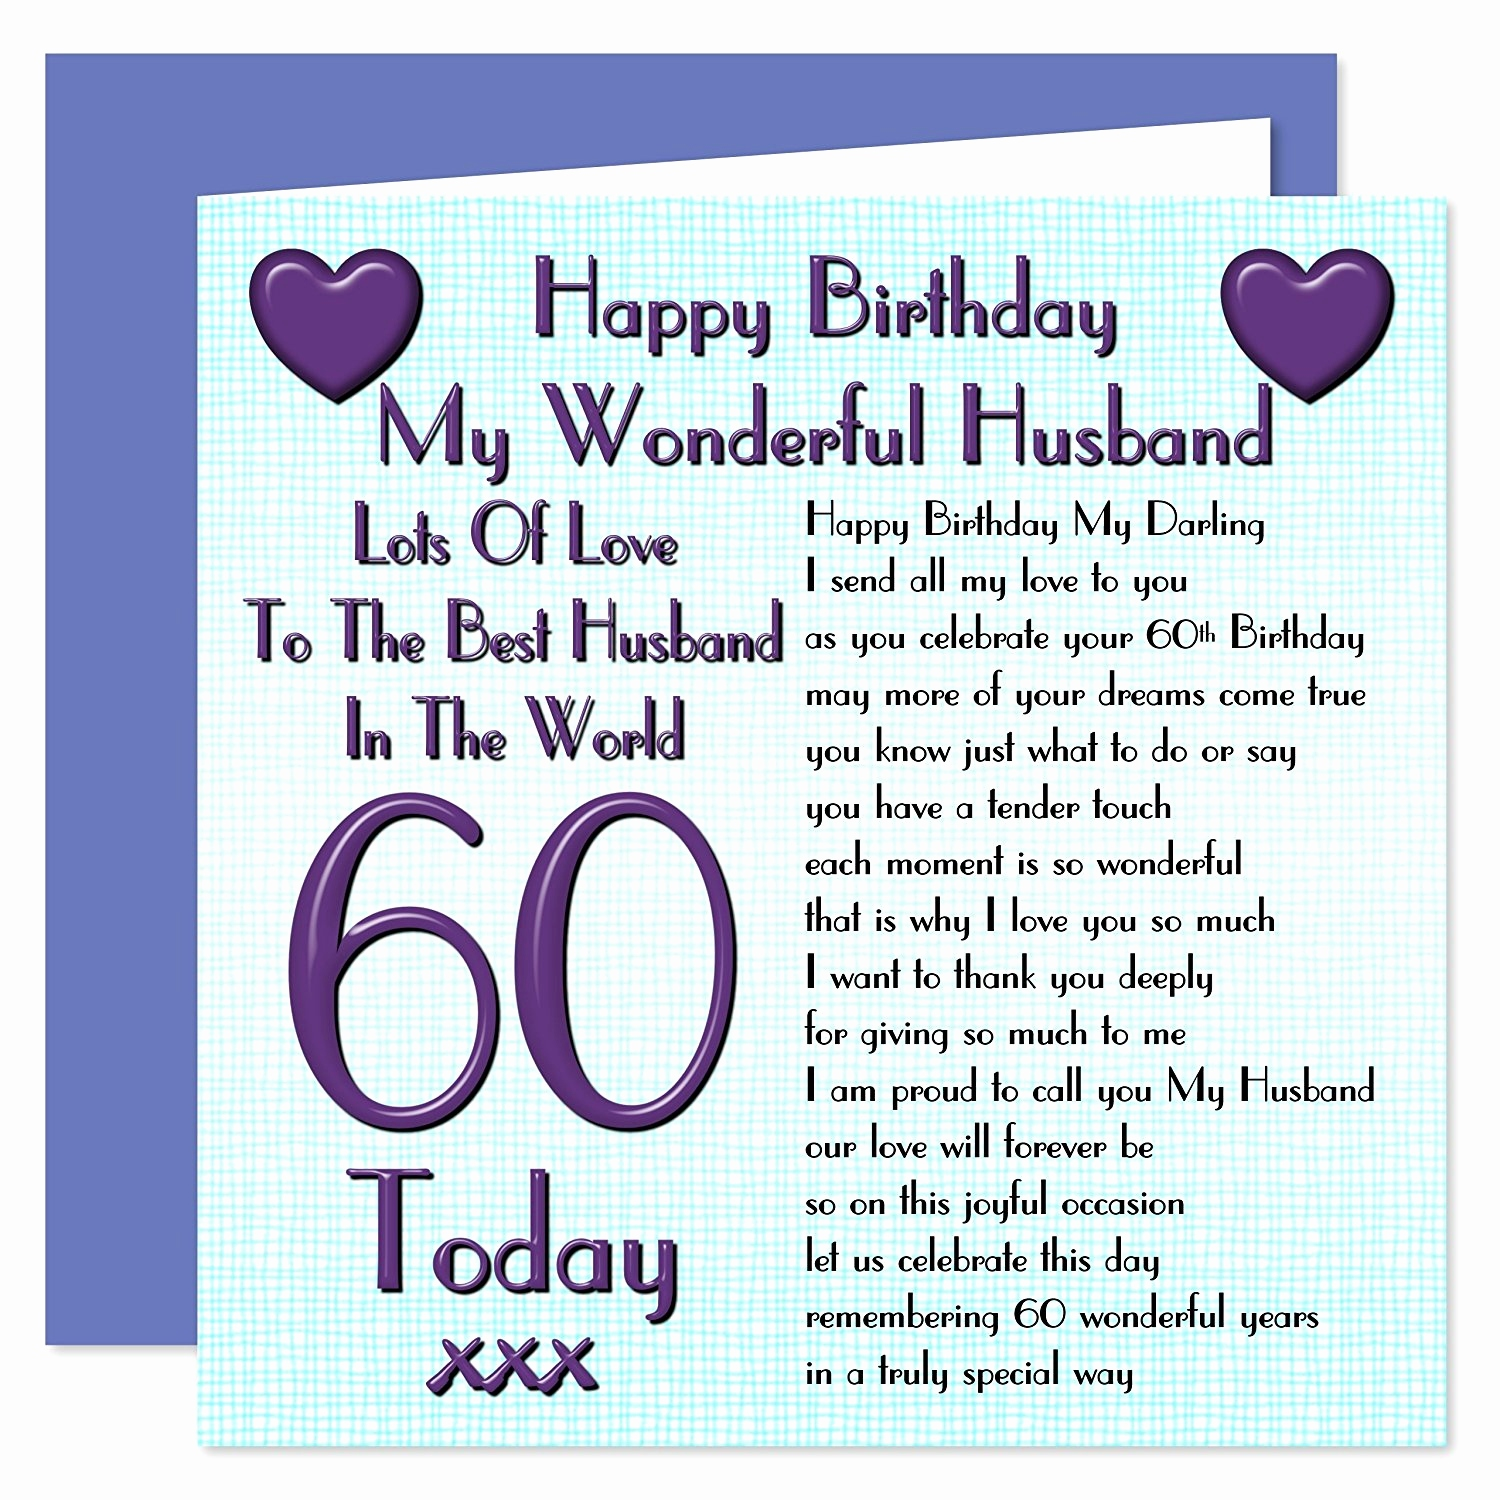 best birthday card messages for husband ; 60th-birthday-card-messages-unique-husband-60th-happy-birthday-card-lots-love-to-the-best-of-60th-birthday-card-messages